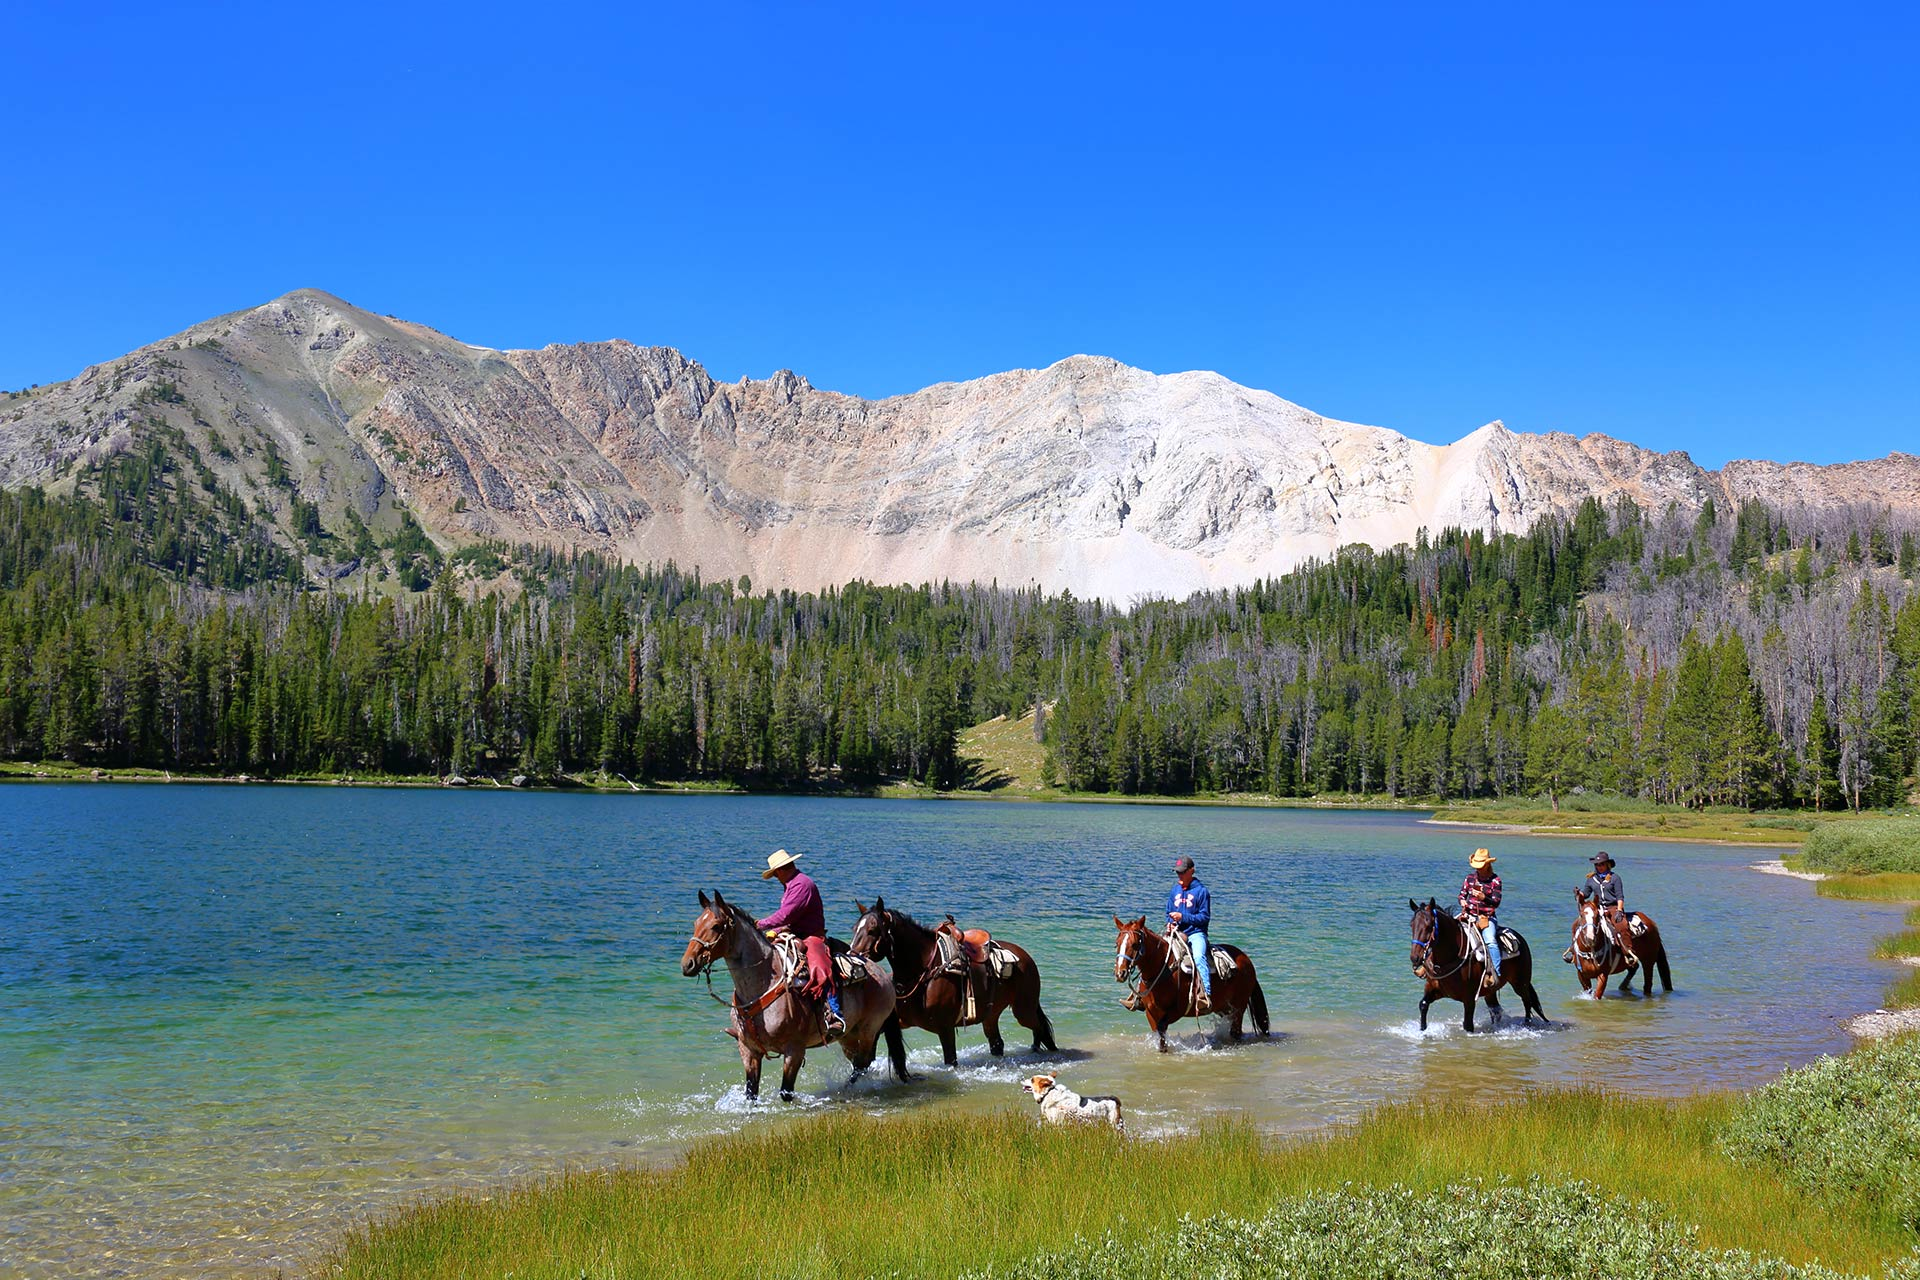 A family horseback ride through the mountain lakes and at the base of the rockies in the sawtooth mountains